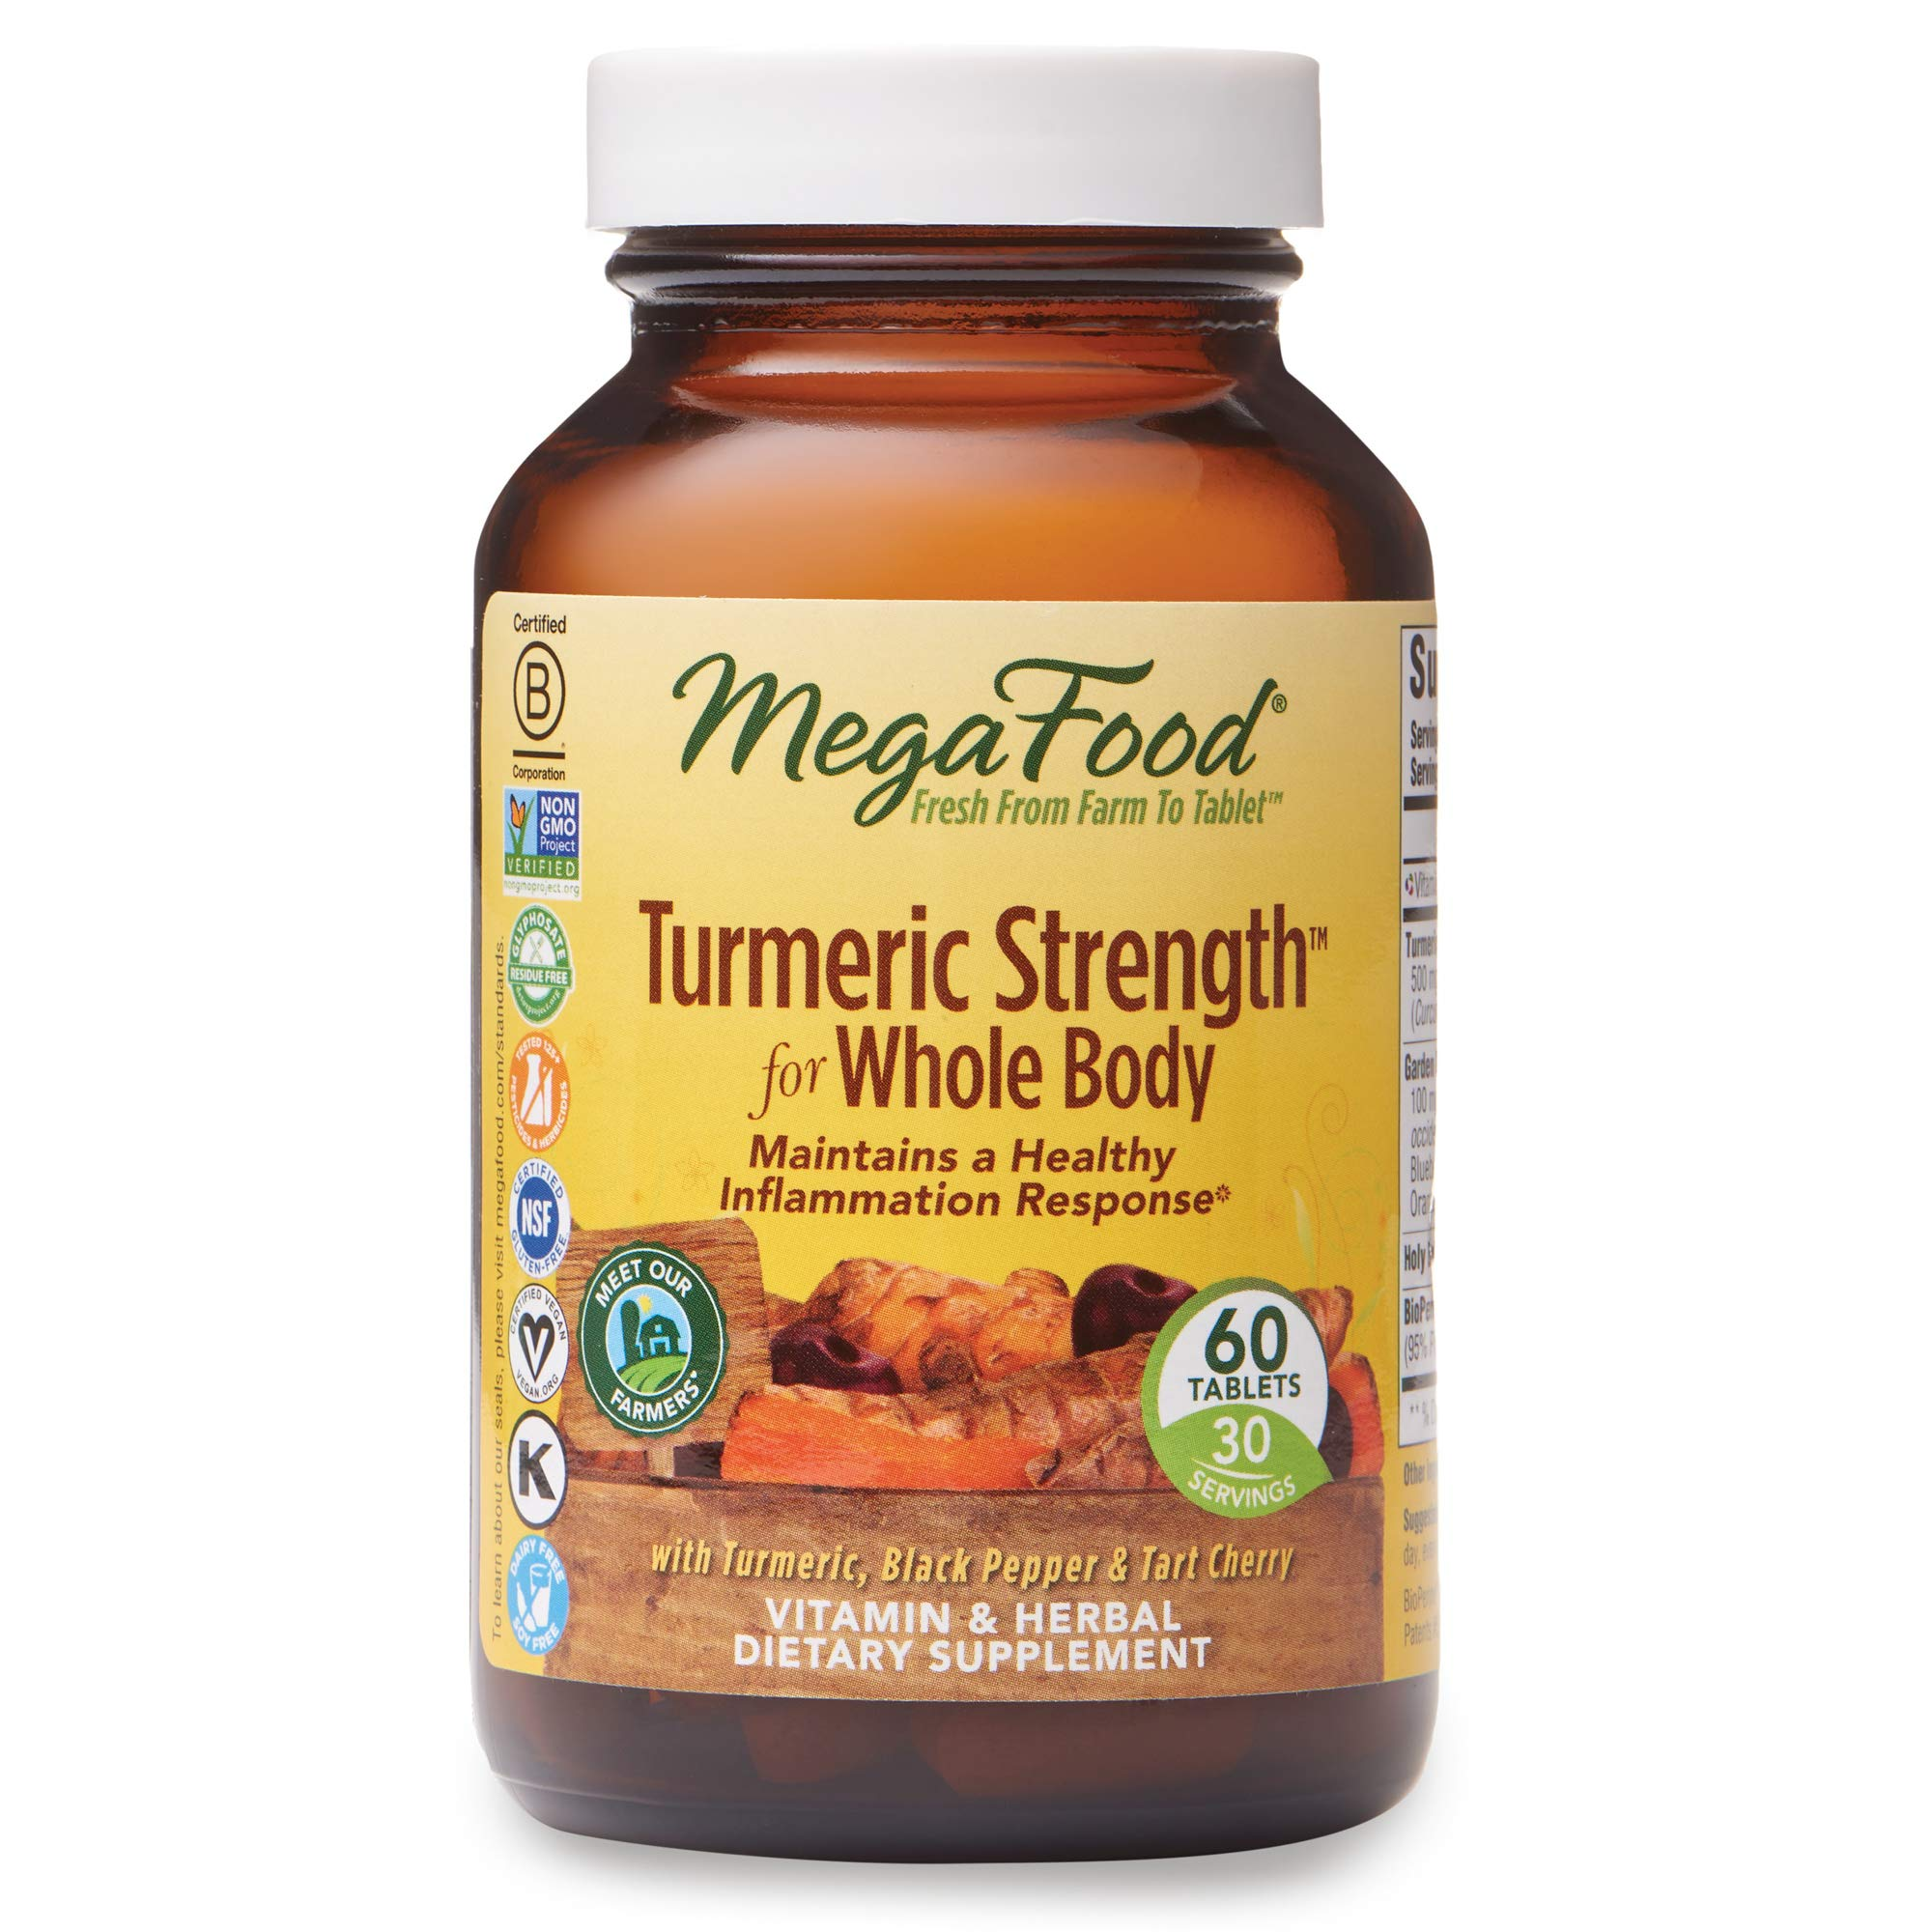 MegaFood, Turmeric Strength for Whole Body, Maintains a Healthy Inflammation Response, Vitamin and Herbal Dietary Supplement Vegan, 60 Tablets (30 Servings) (FFP)